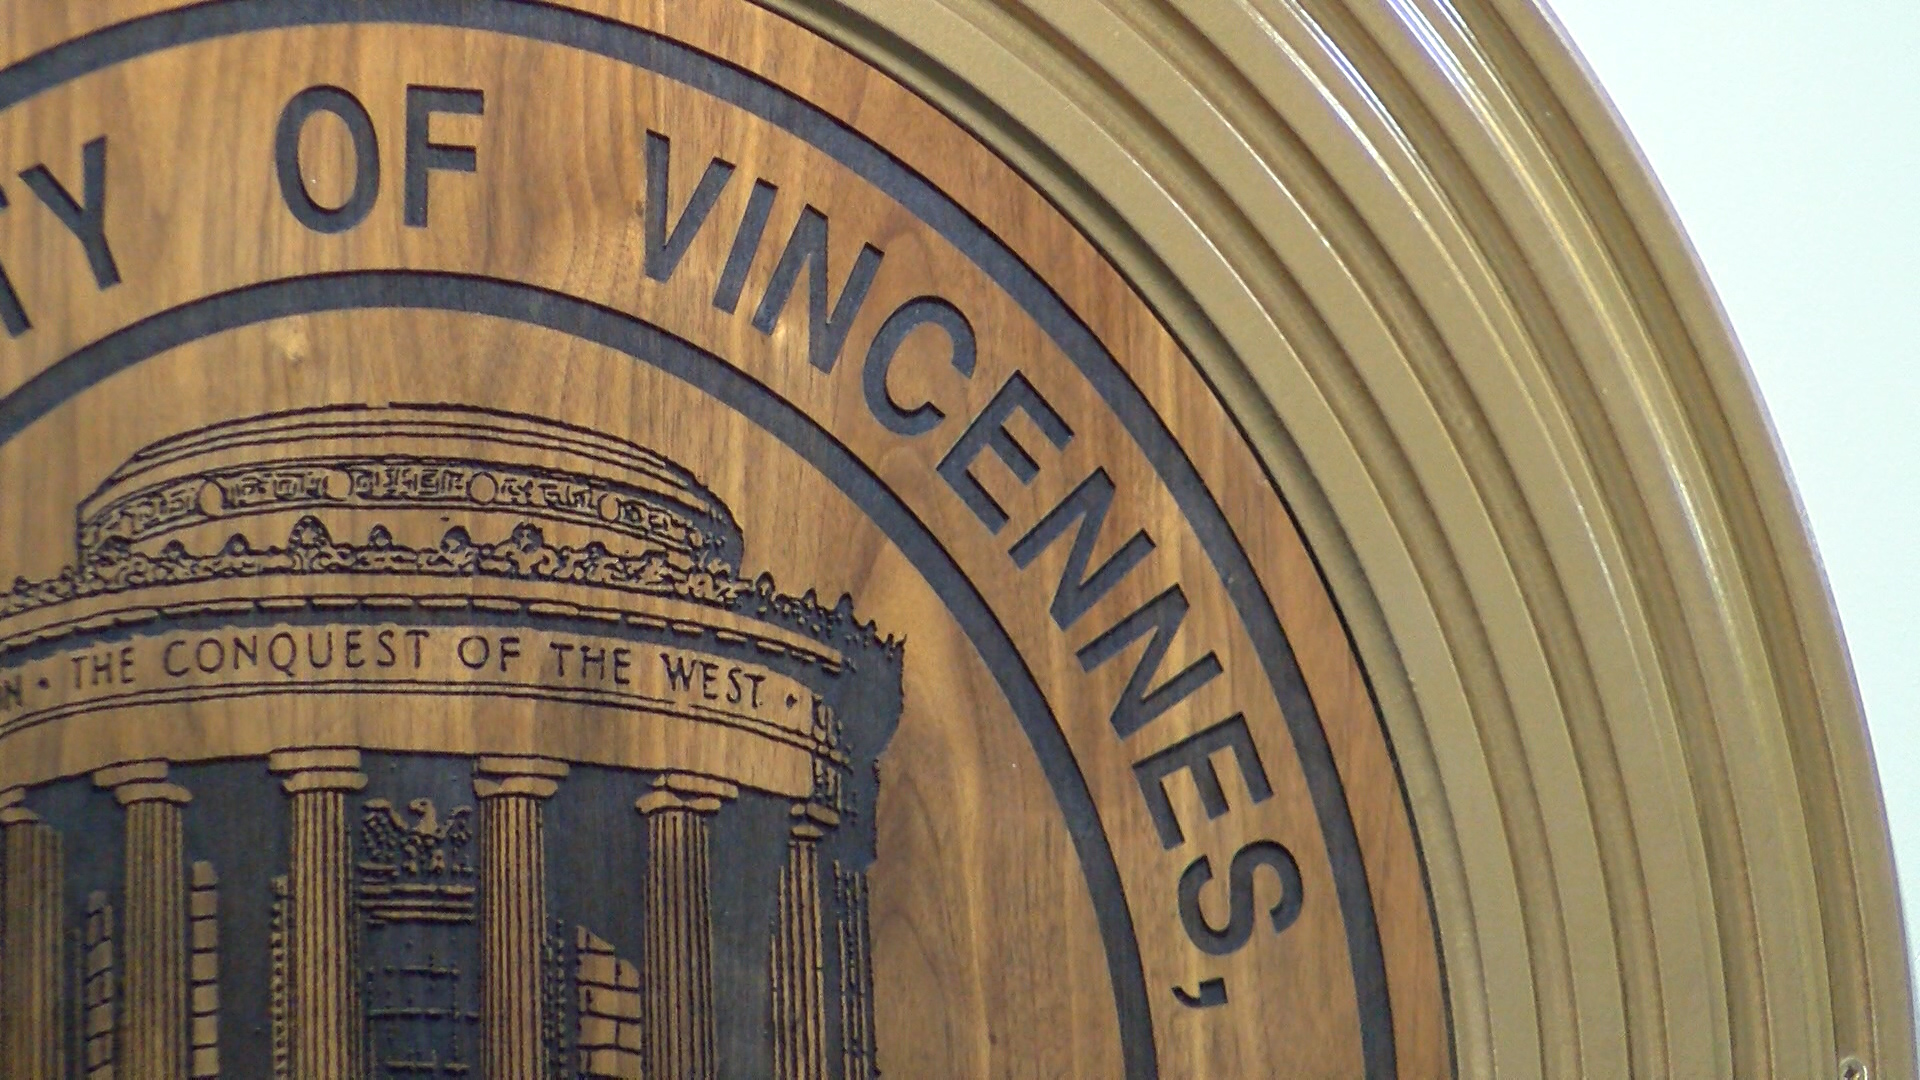 vincennes sign_1491612419977.jpg